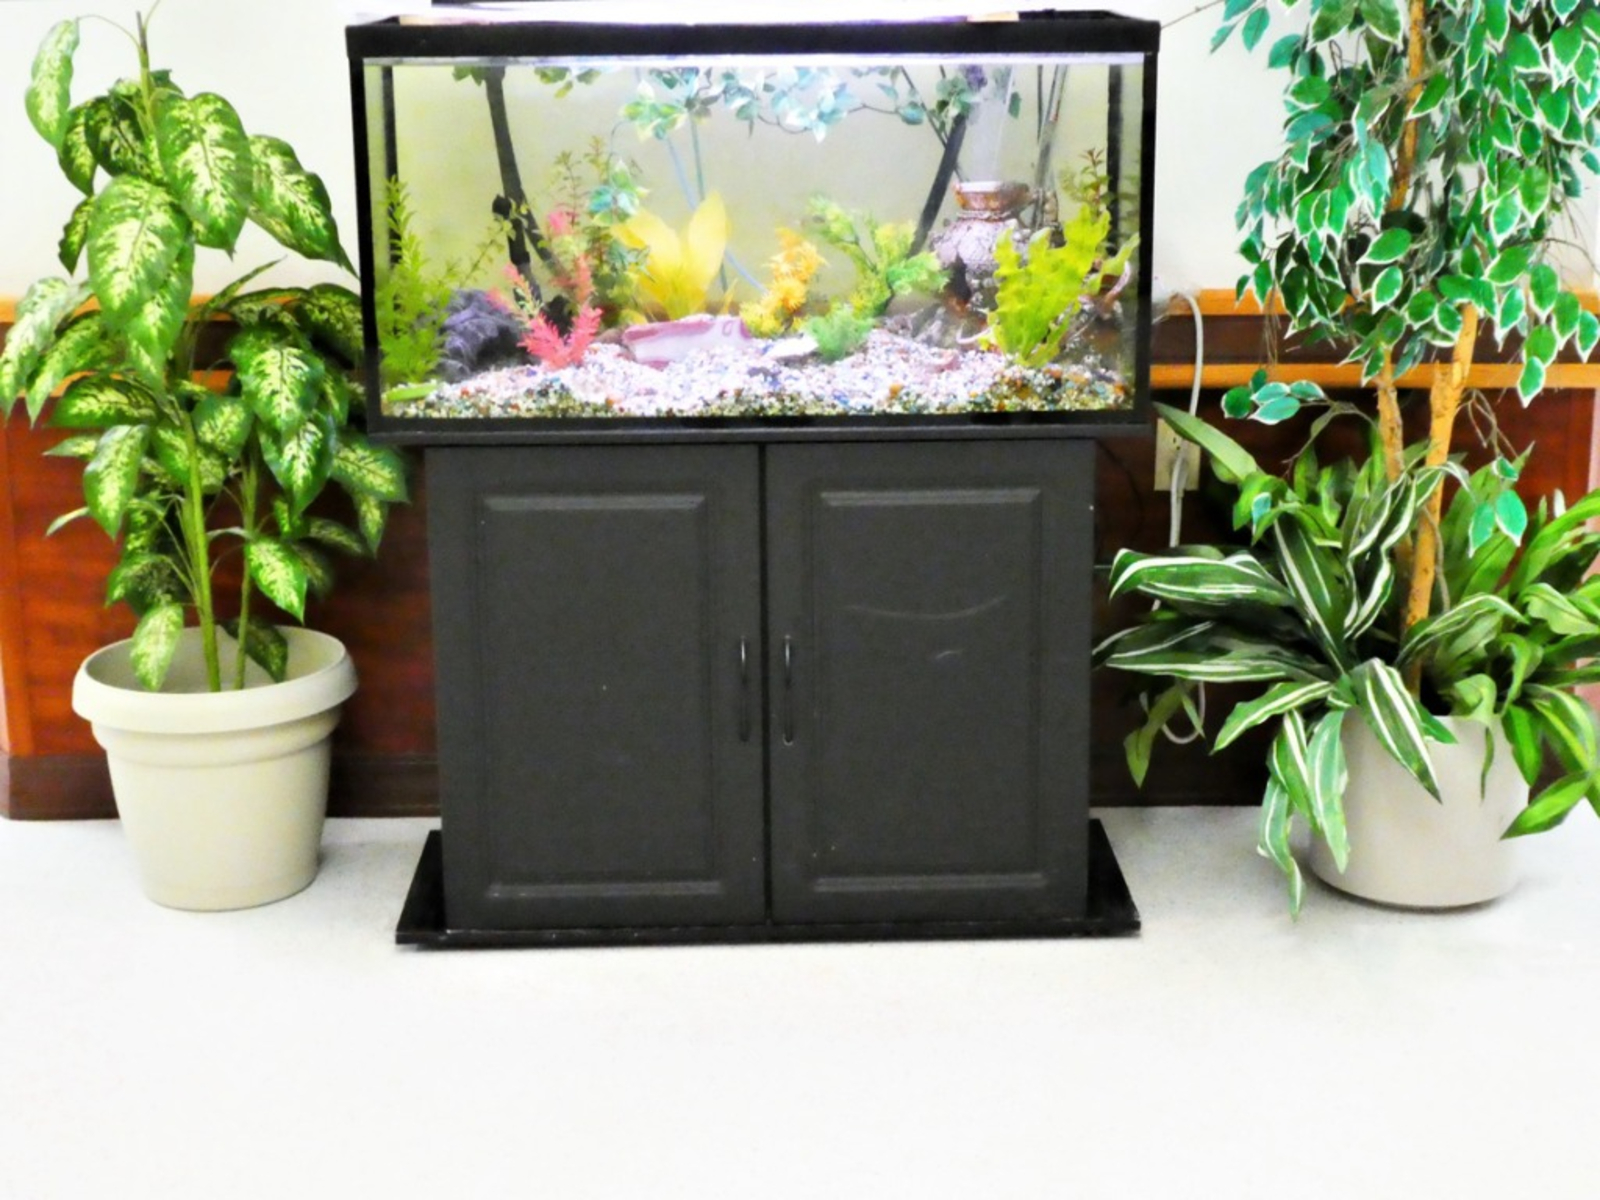 Can You Irrigate Plants With Aquarium Water Watering Plants With Aquarium Water